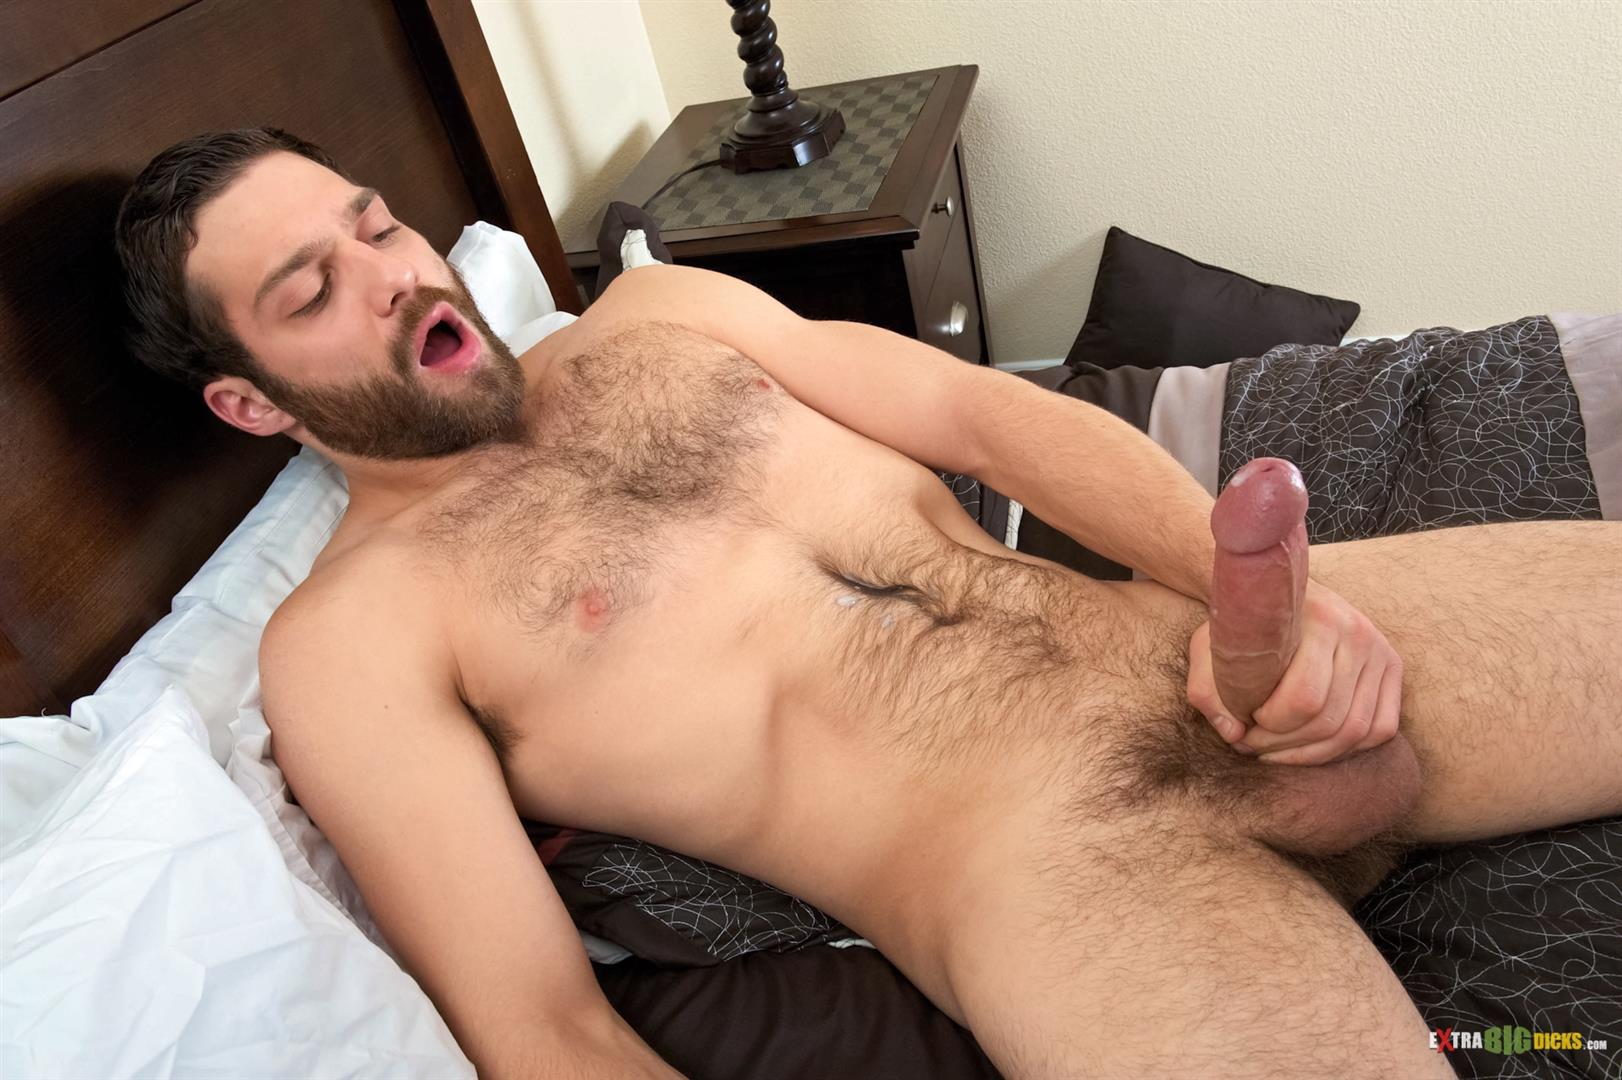 Extra Big Dicks Tommy Defendi Hairy Muscle Guy Jerking Off Amateur Gay Porn 14 Hairy Muscle Stud Tommy Defendi Jerking Off His Big Thick Cock